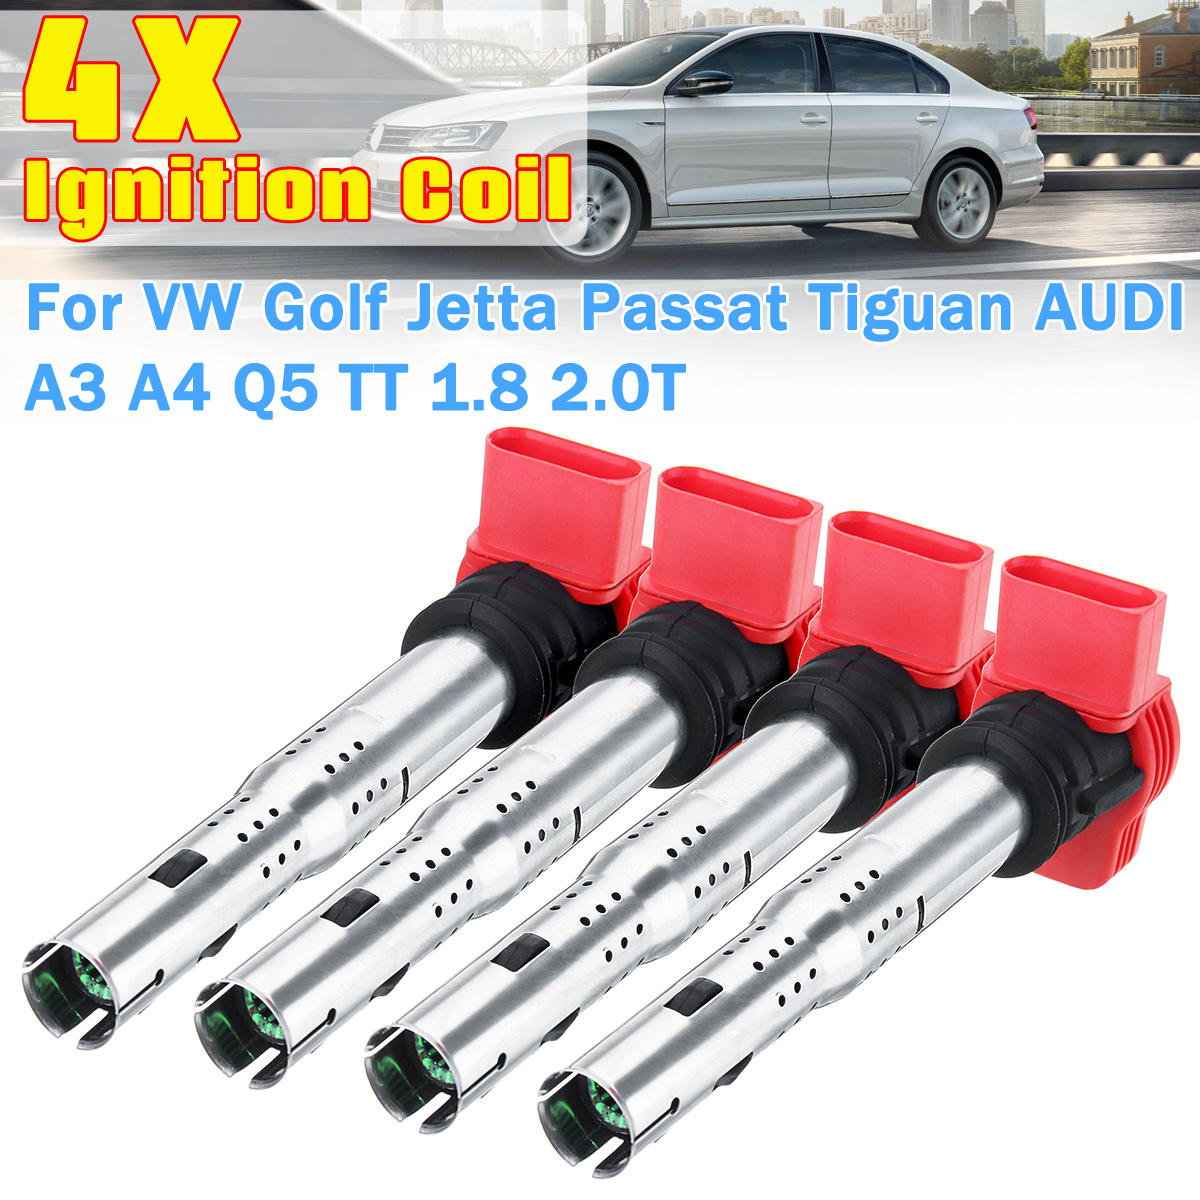 цена на 4Pcs 06E905115A/B/C/D/E Universal Ignition Coil for VW for Golf for Jetta for Passat for Tiguan for AUDI A3 A4 Q5 TT 1.8 2.0T